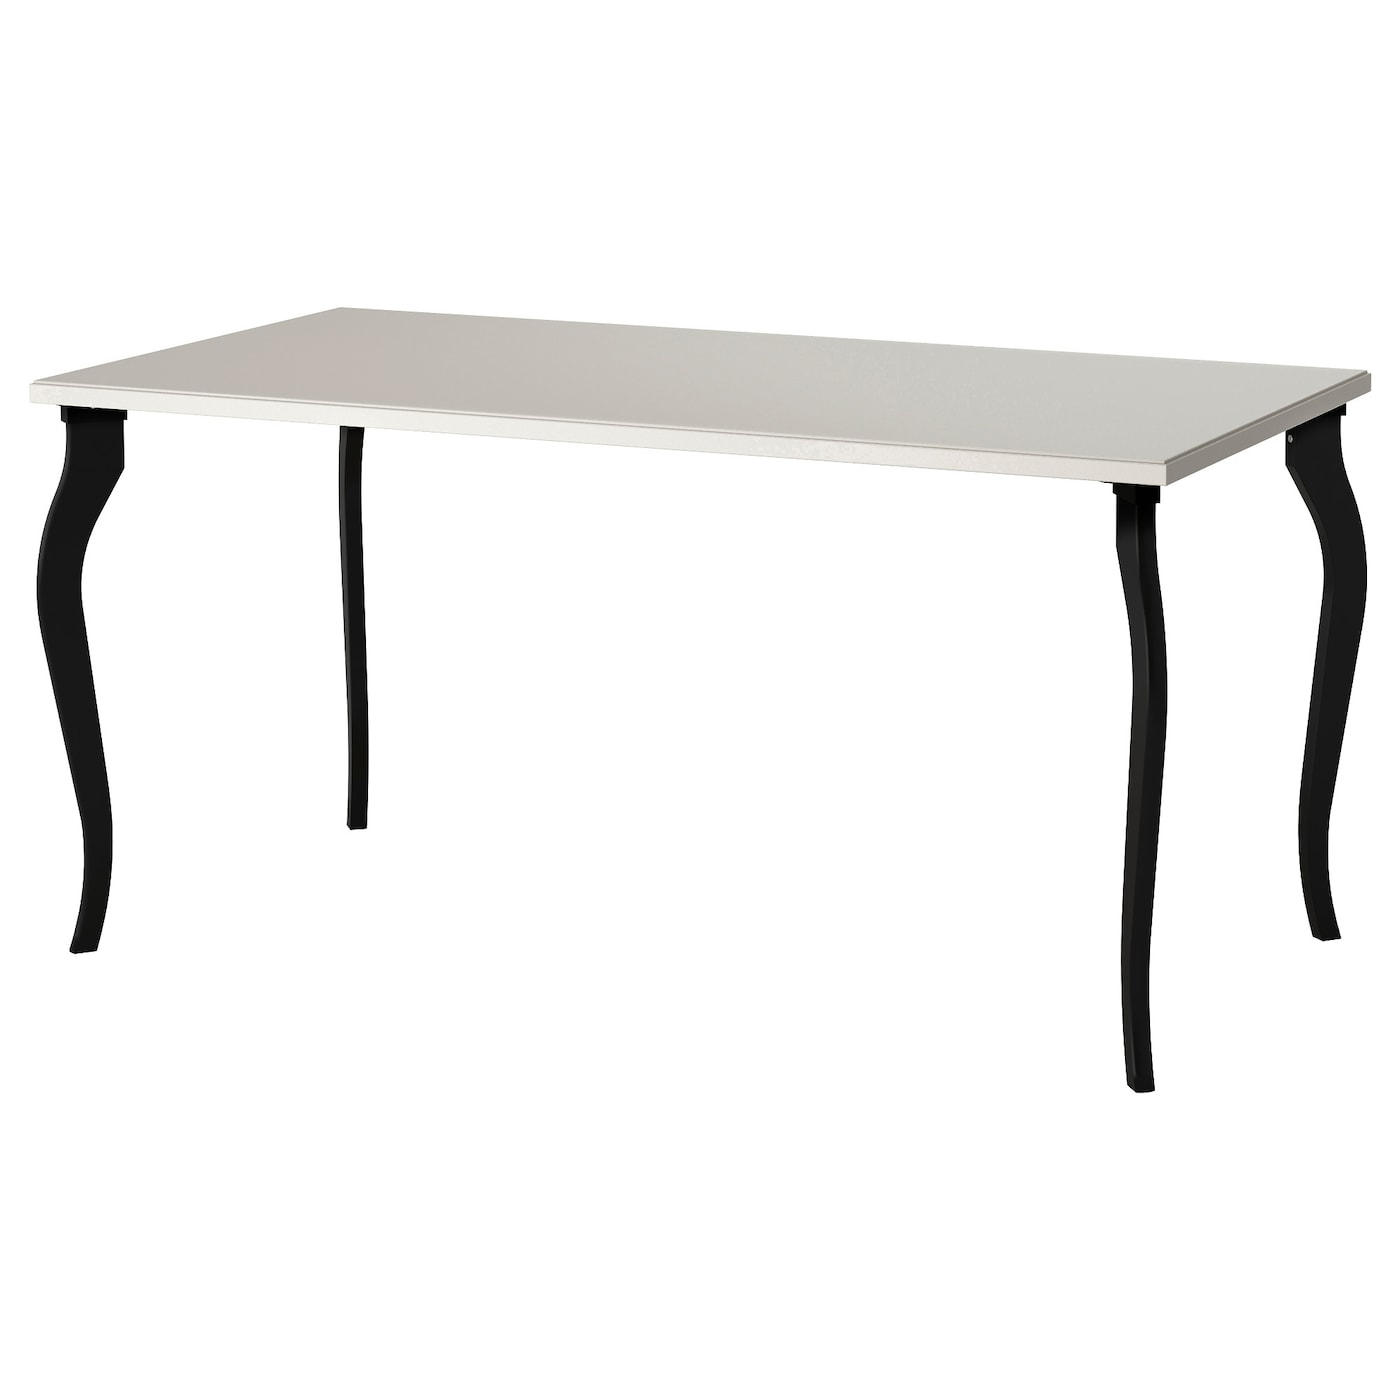 Computer tables desks for mobile solutions ikea - Ikea table salle a manger ...